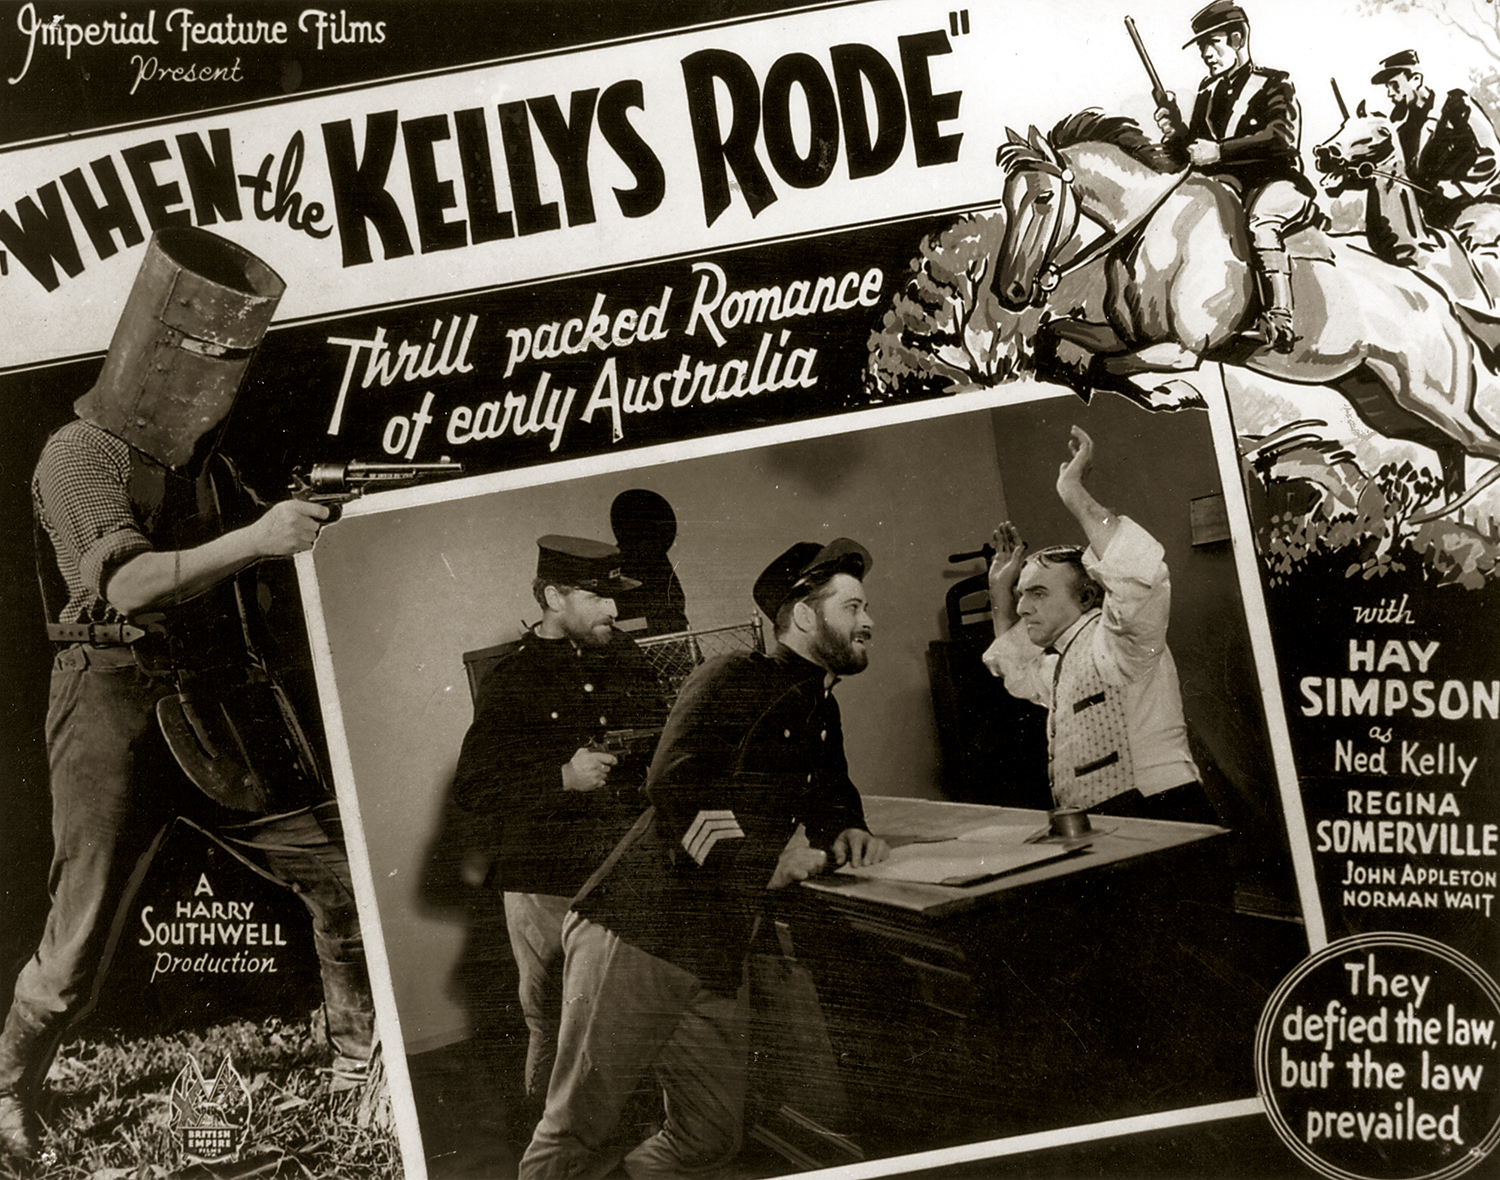 When the Kellys Rode [1934]